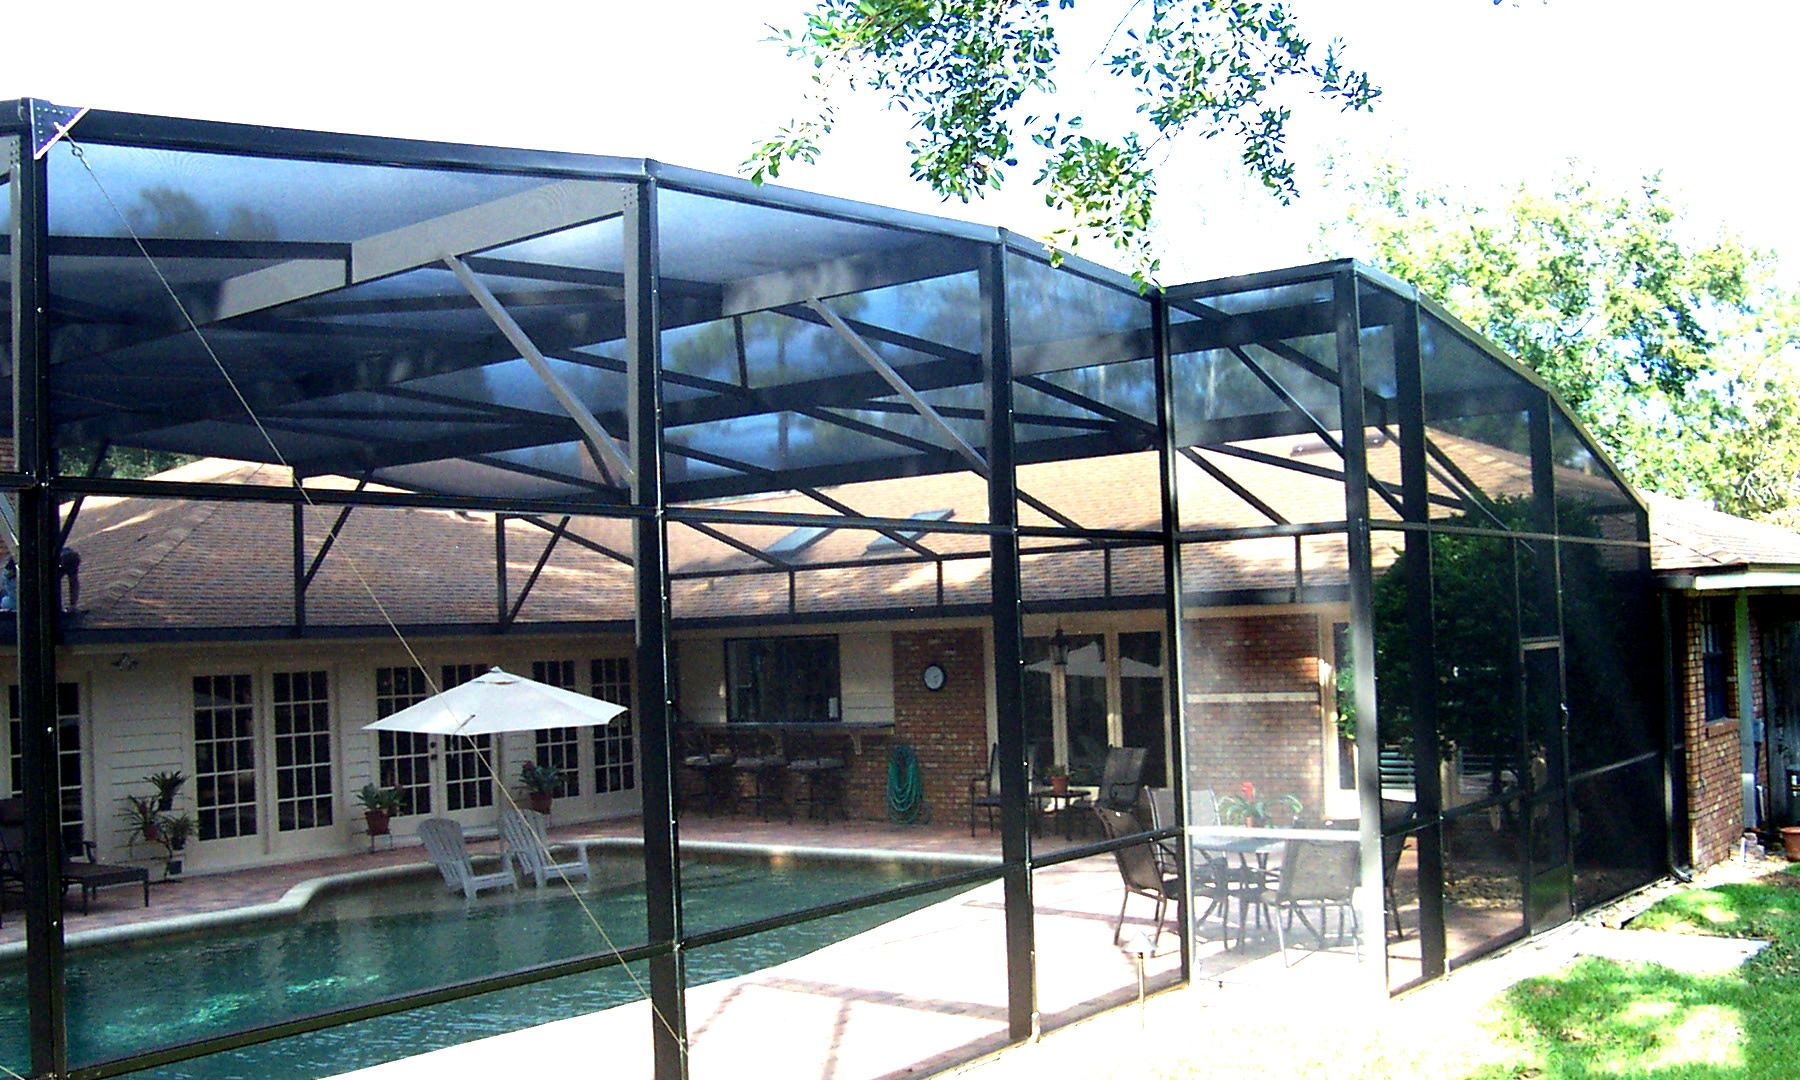 Dome Style Aluminum Screen Enclosure By Design Pro Screens Call Today For All Your Central Florida P Central Florida Pools Screen Enclosures Pool Enclosures